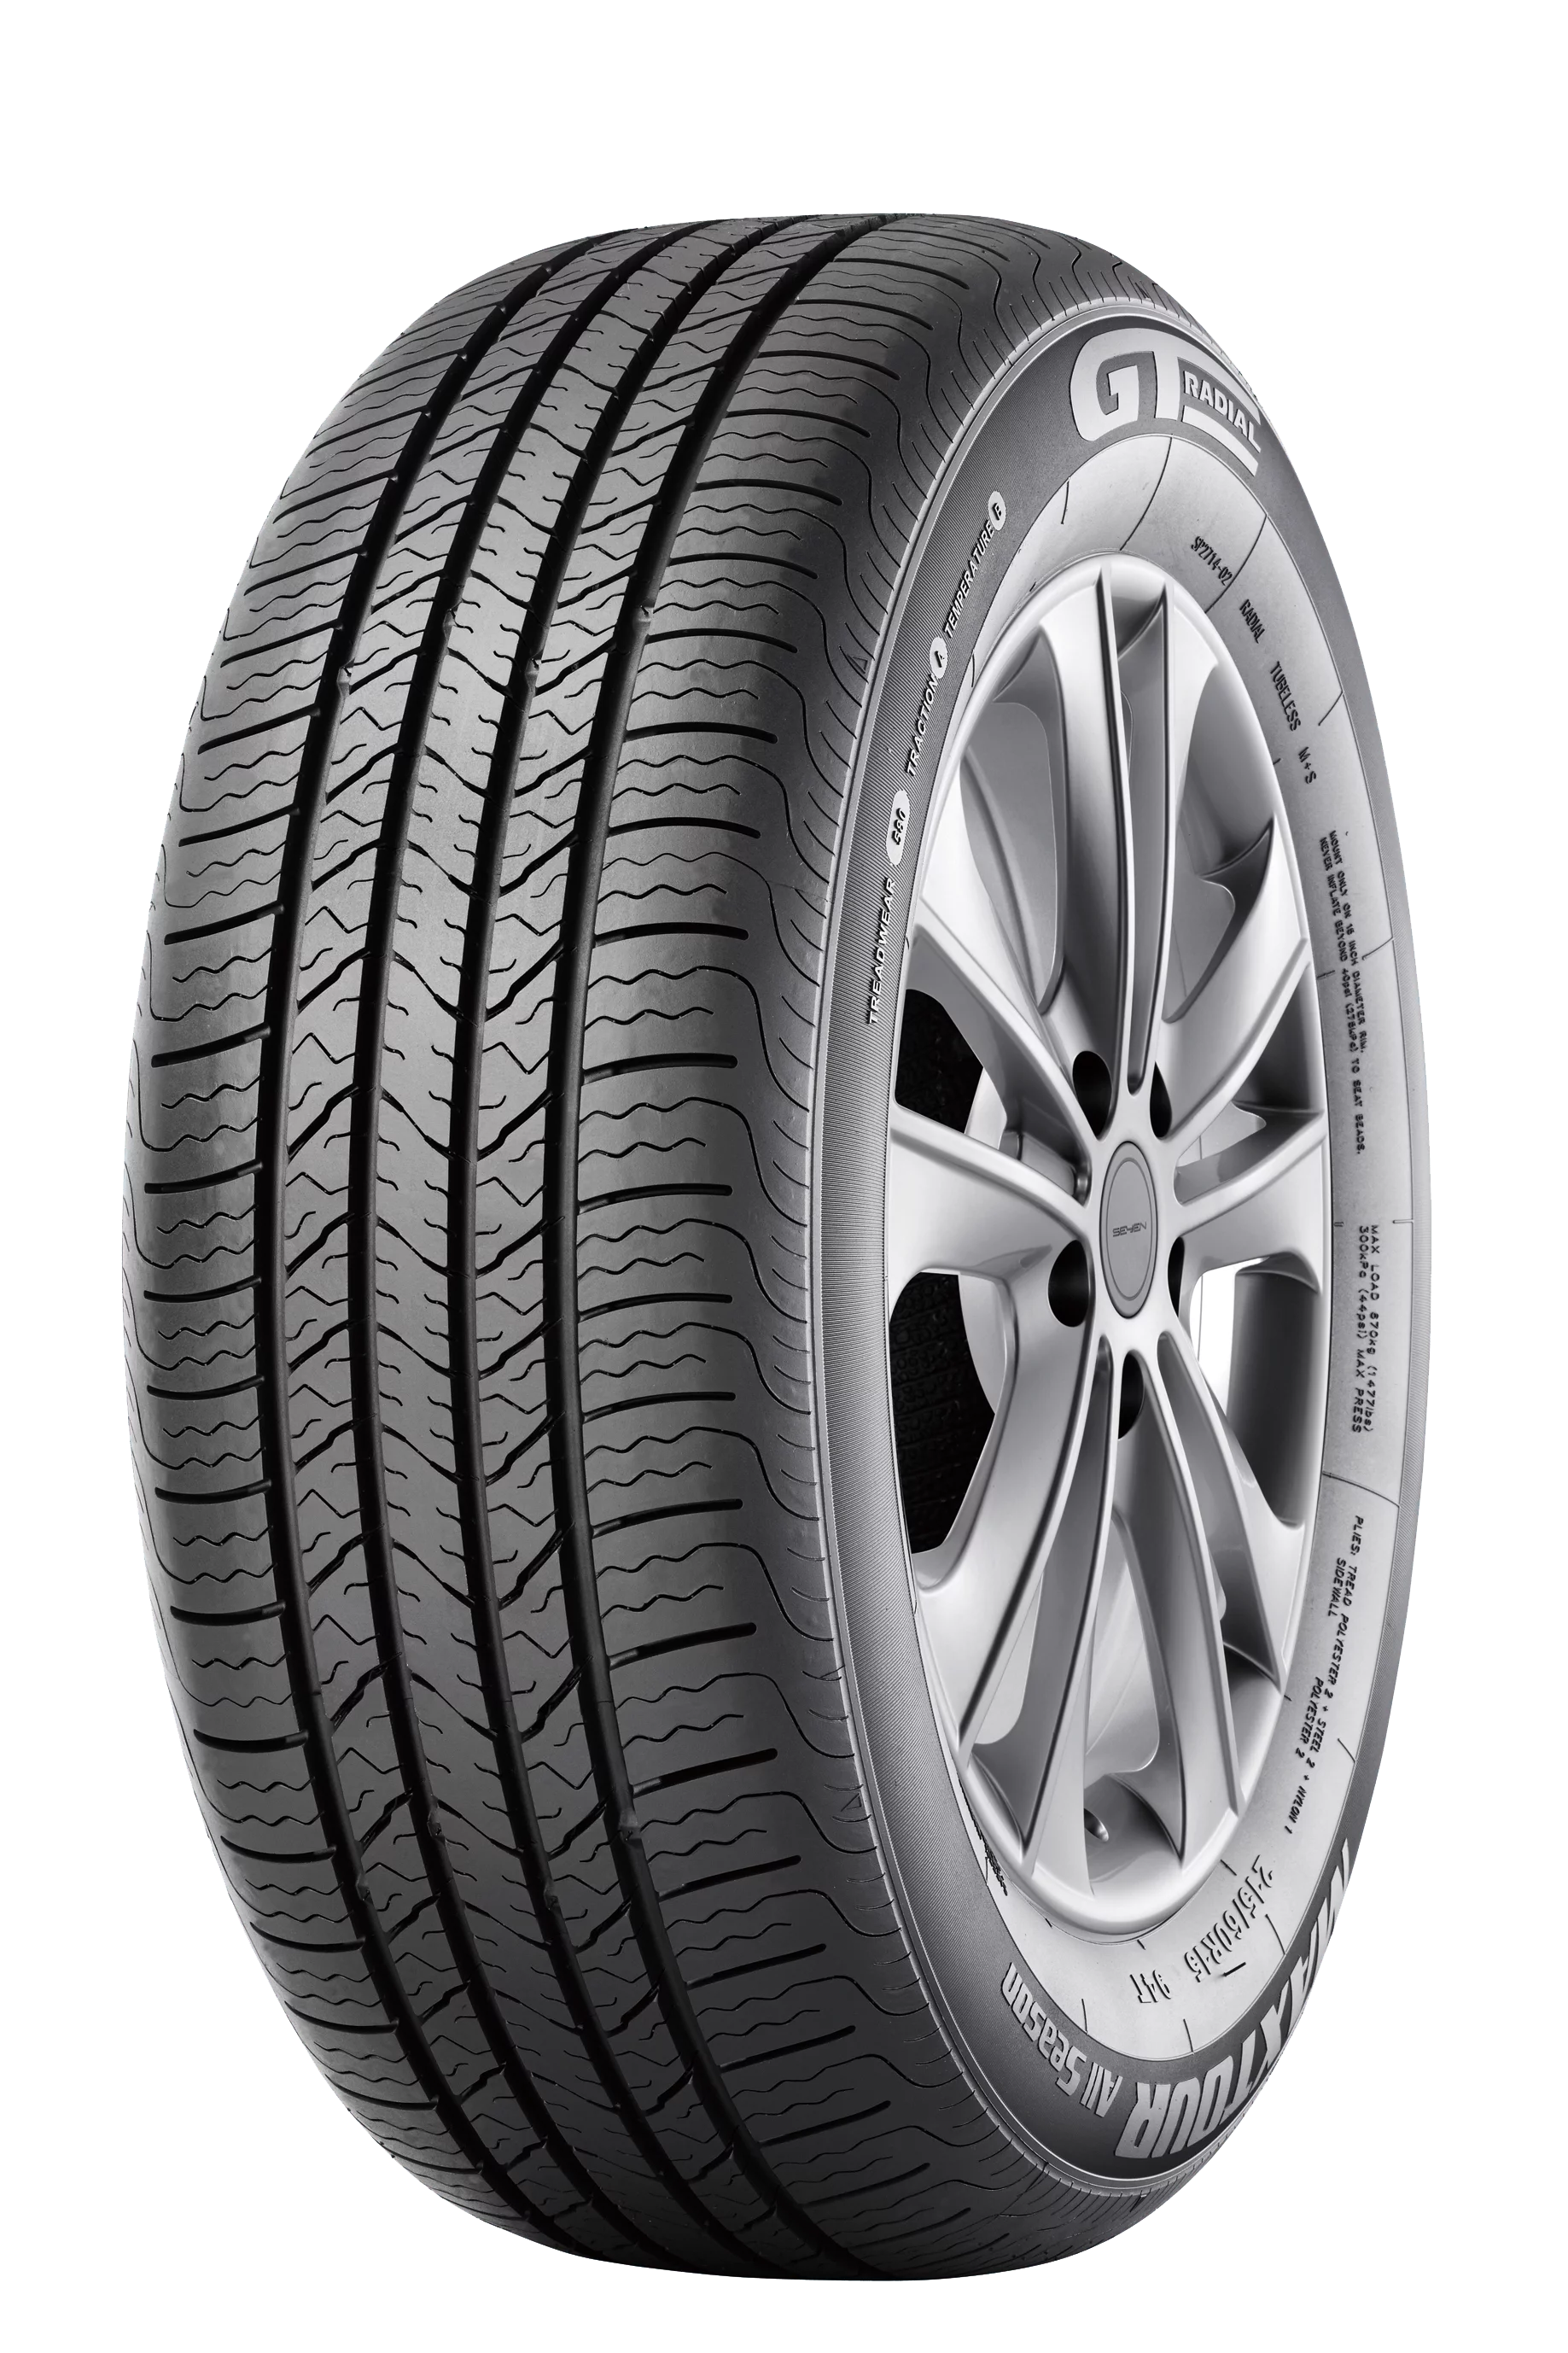 195 65 R15 Continental Gt Radial Maxtour All Season Premium Passenger All Season Radial Tire 185 65r15 88h